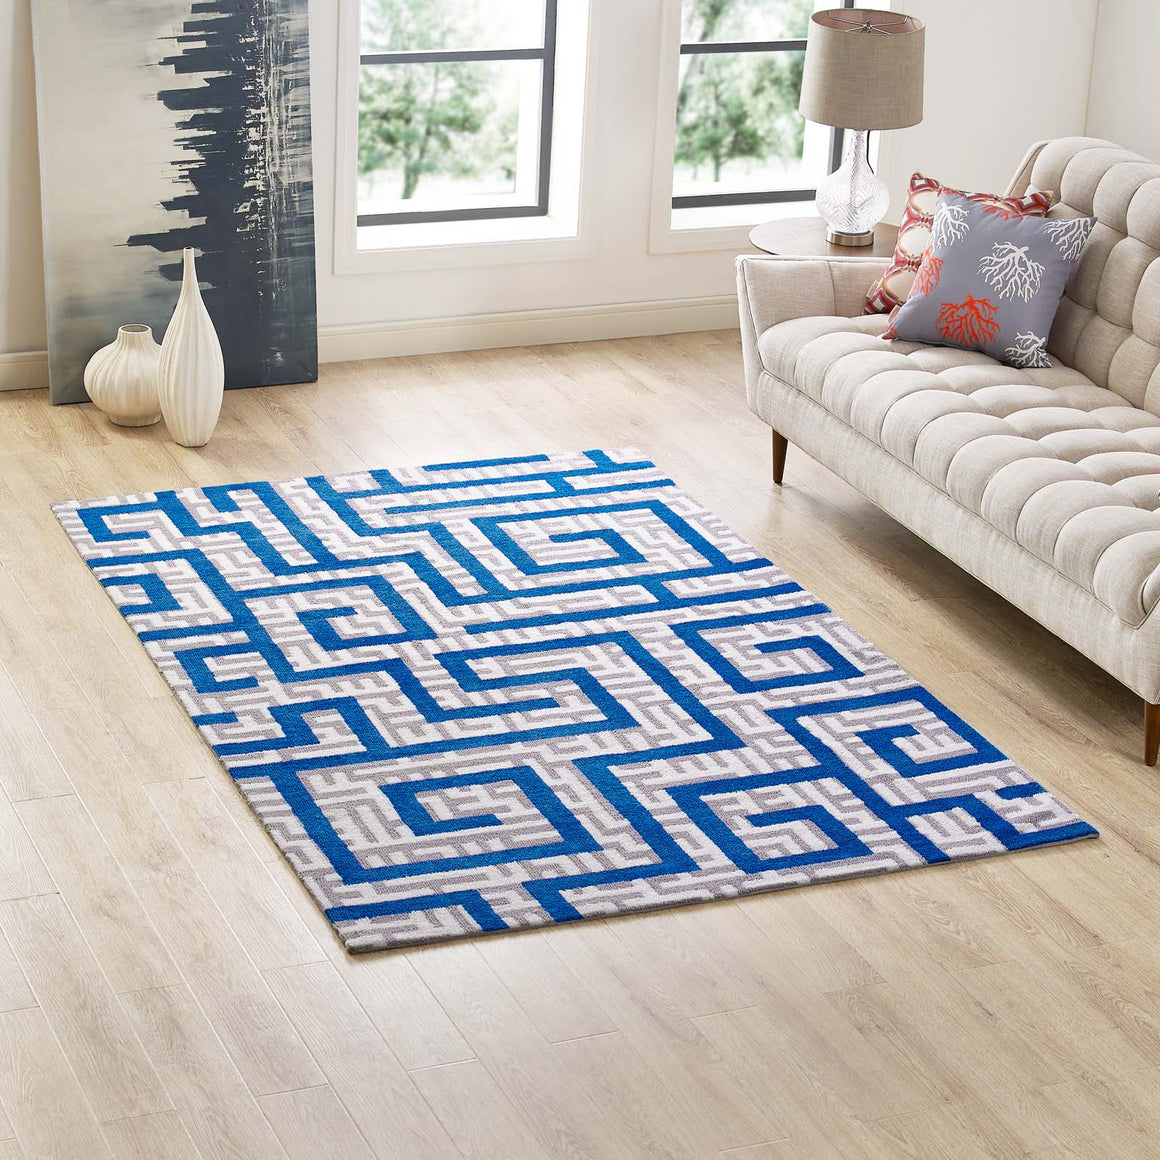 Nahia Geometric Maze 5x8 Area Rug Ivory, Light Gray and Blue